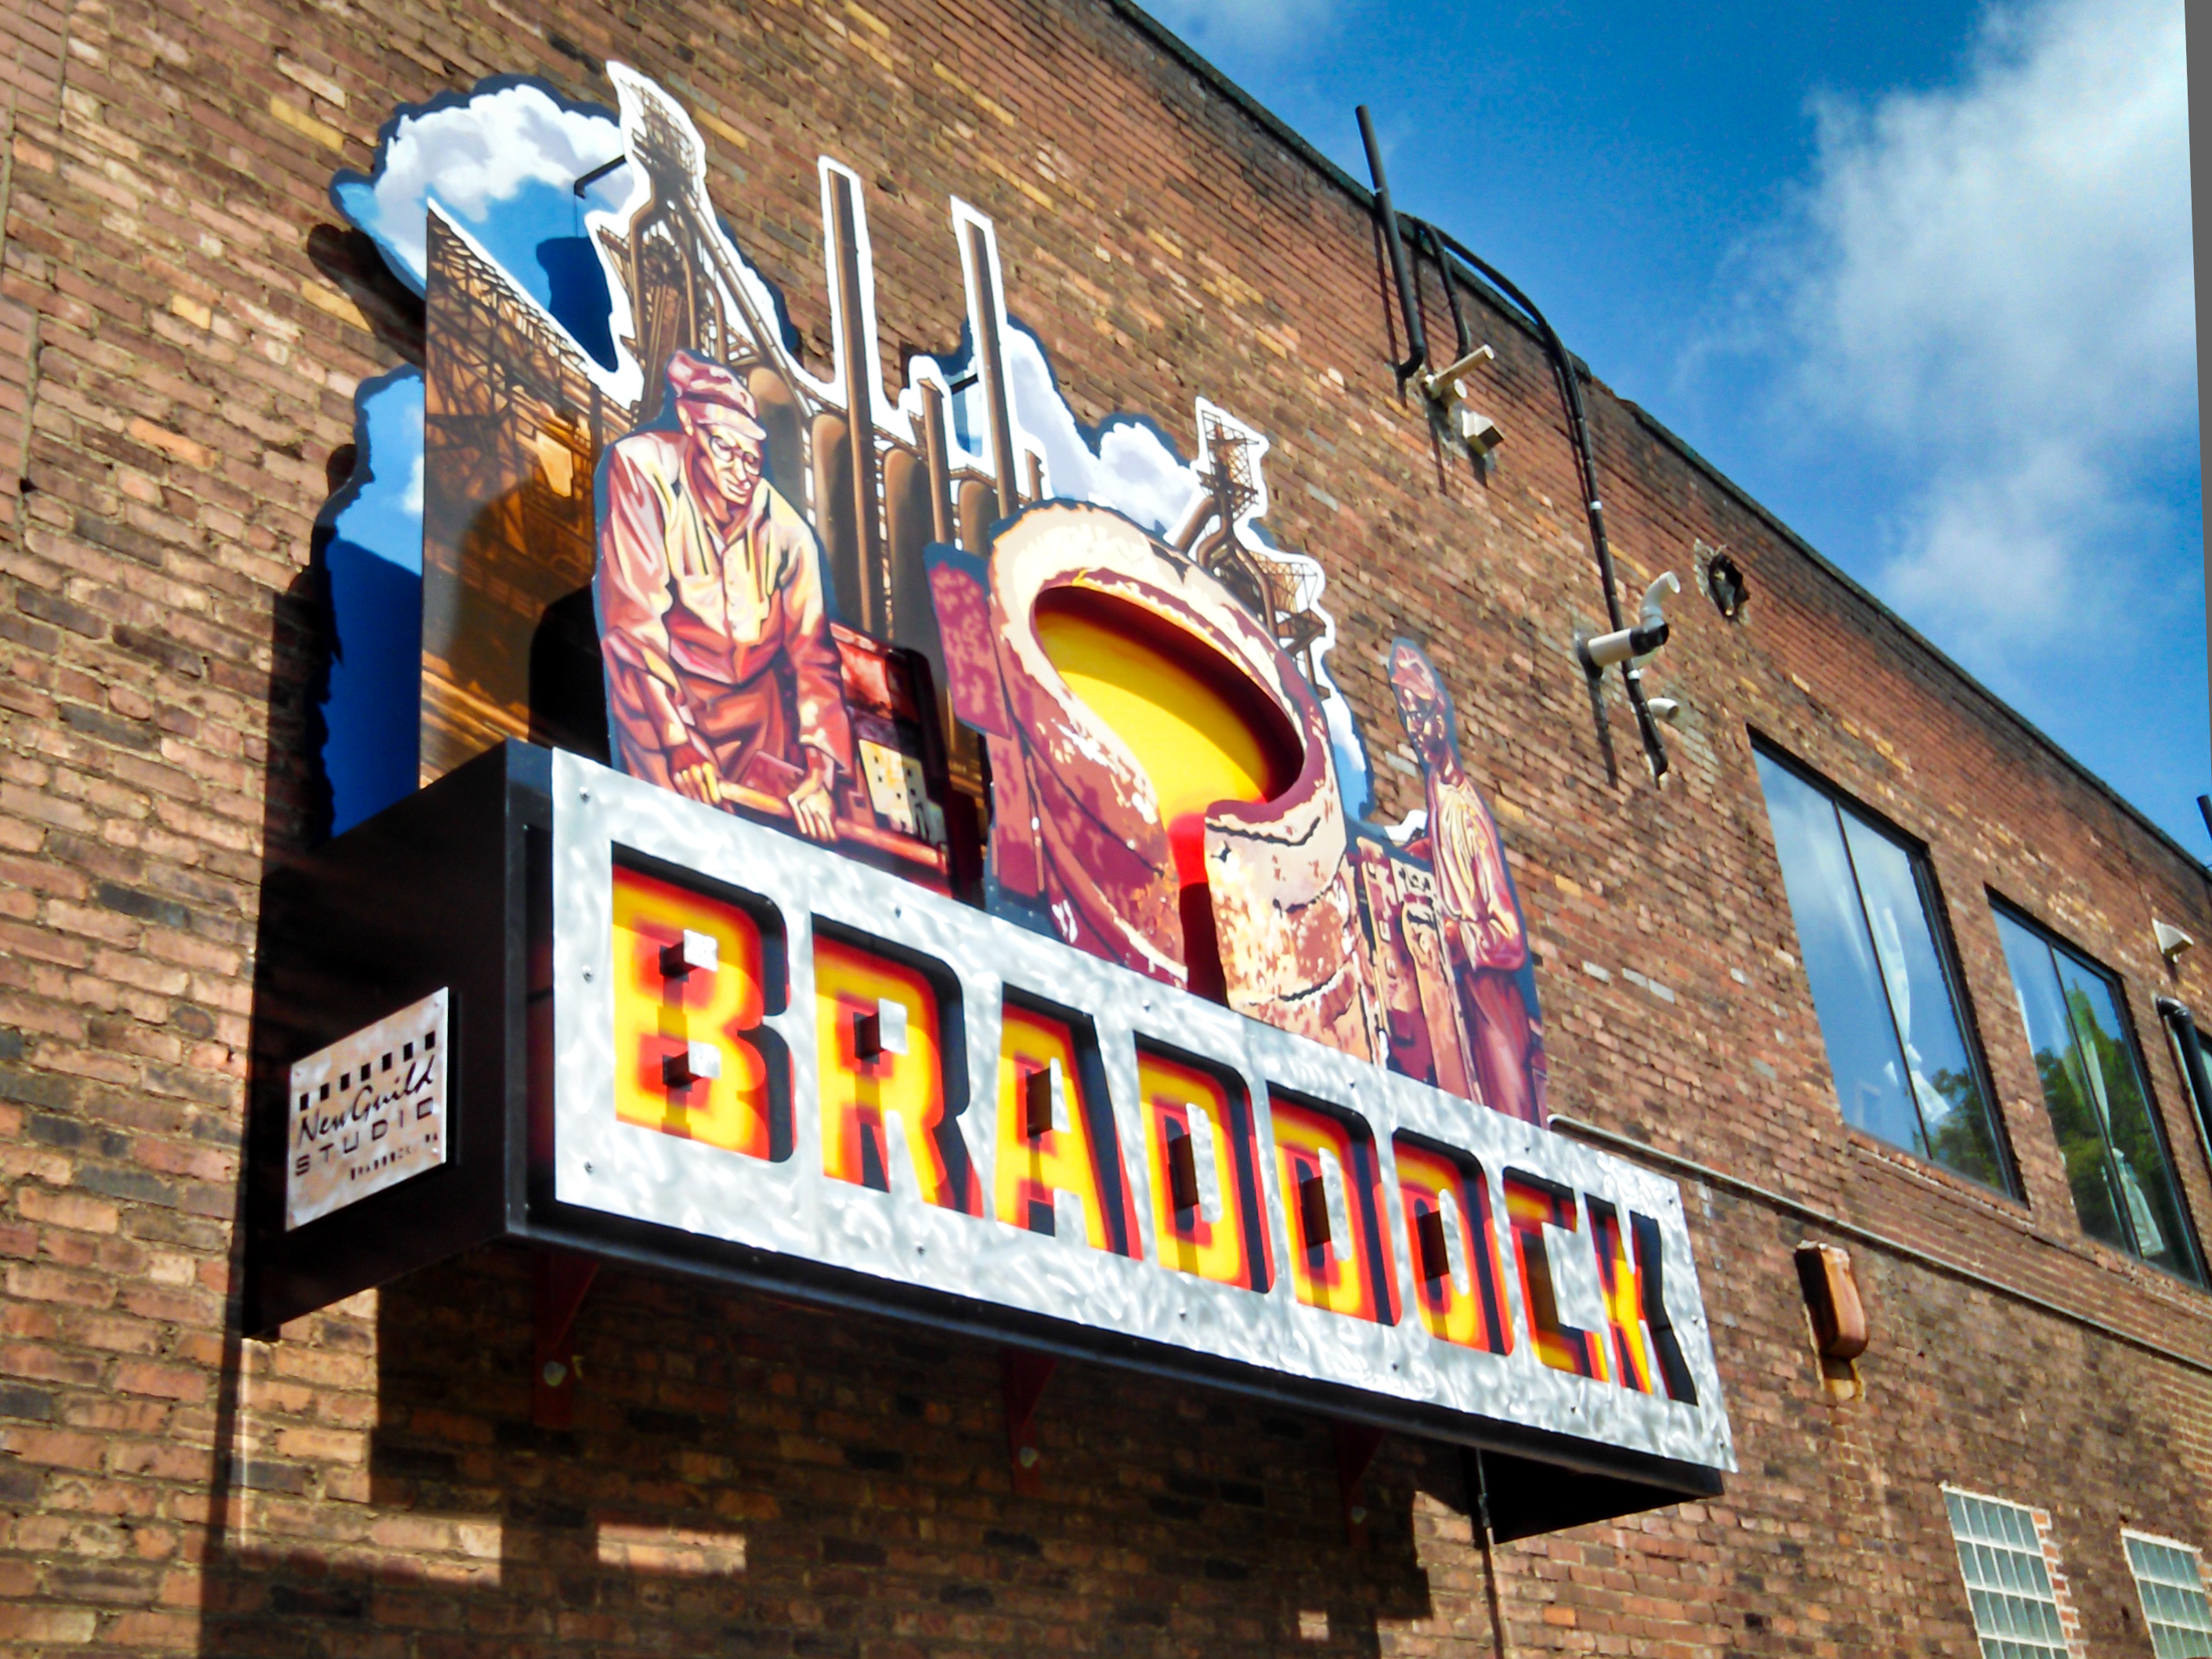 Braddock sign, courtesy of New Guild Studio